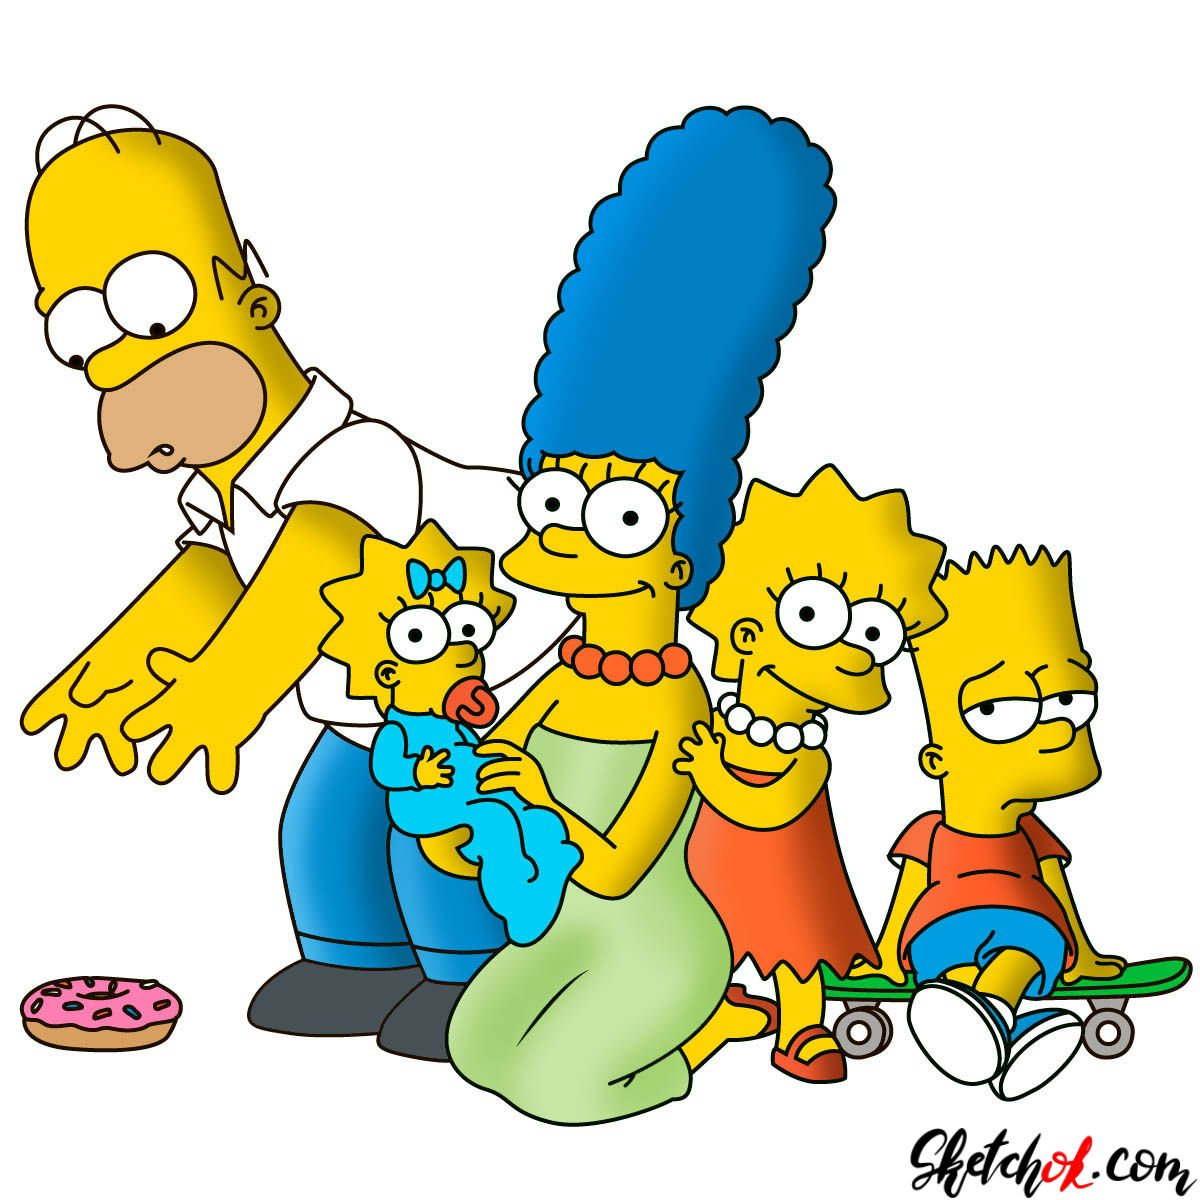 How to draw the Simpsons family together